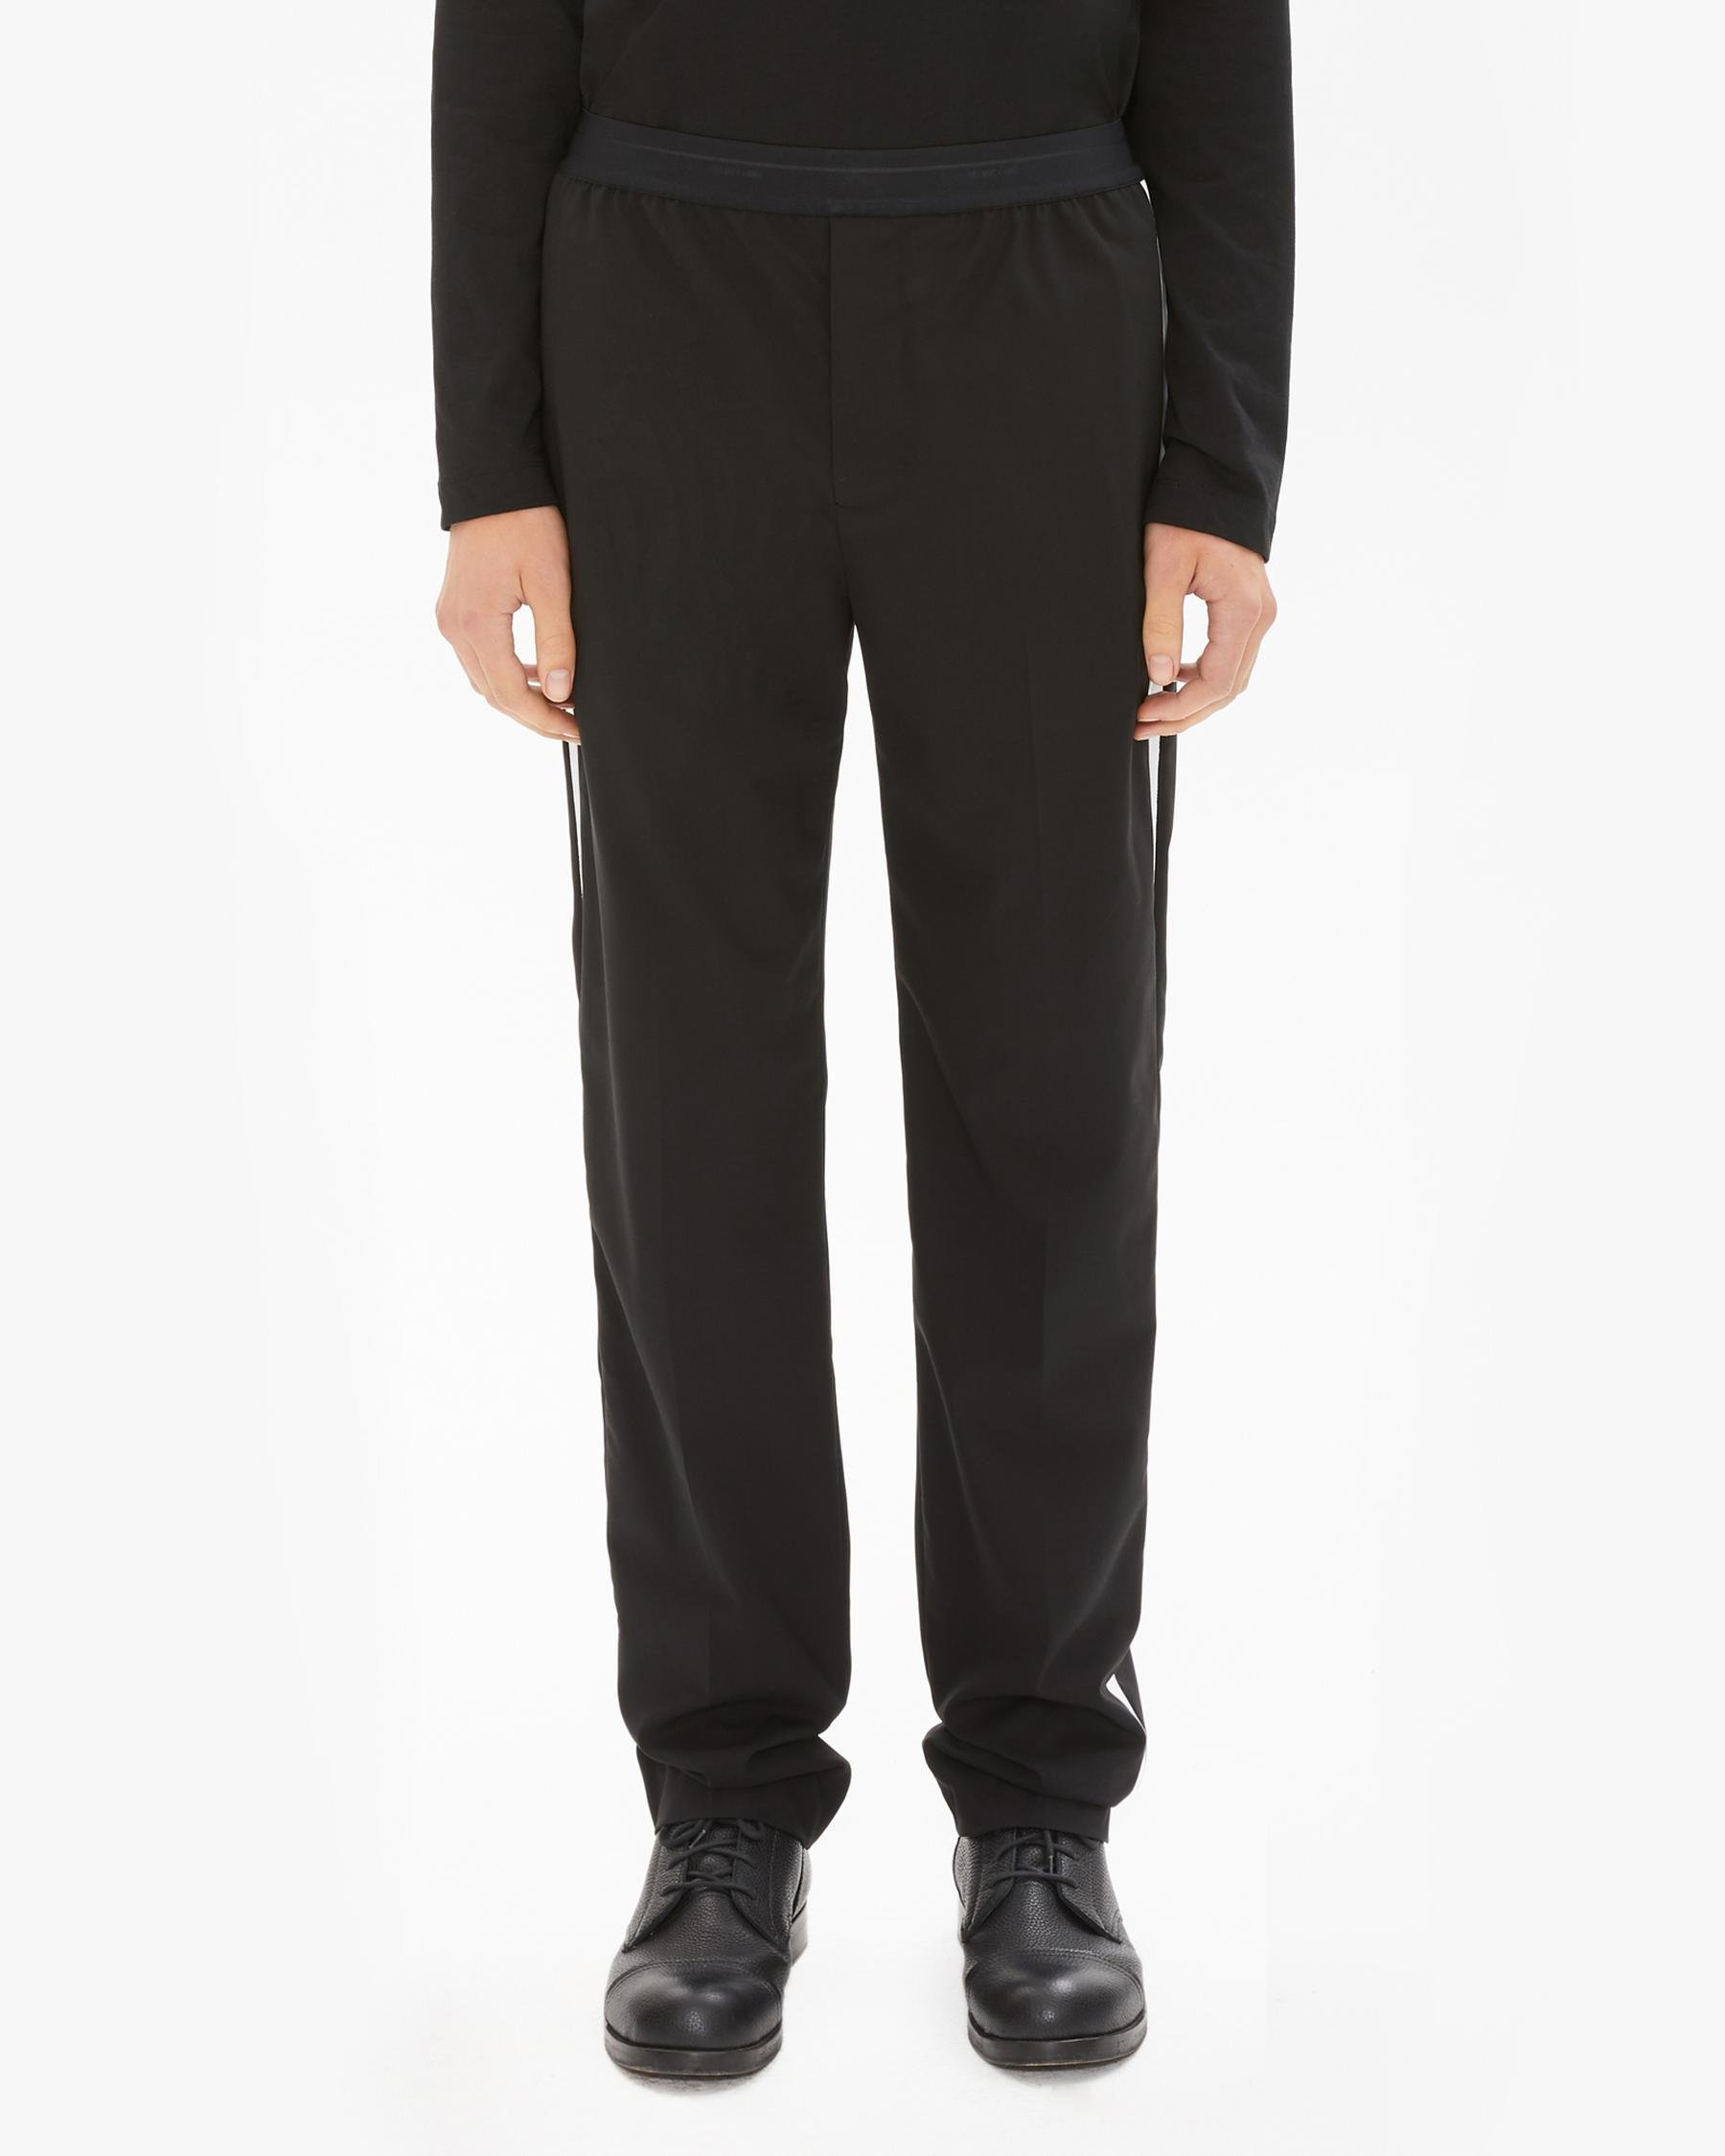 BAND PULL ON PANT 1